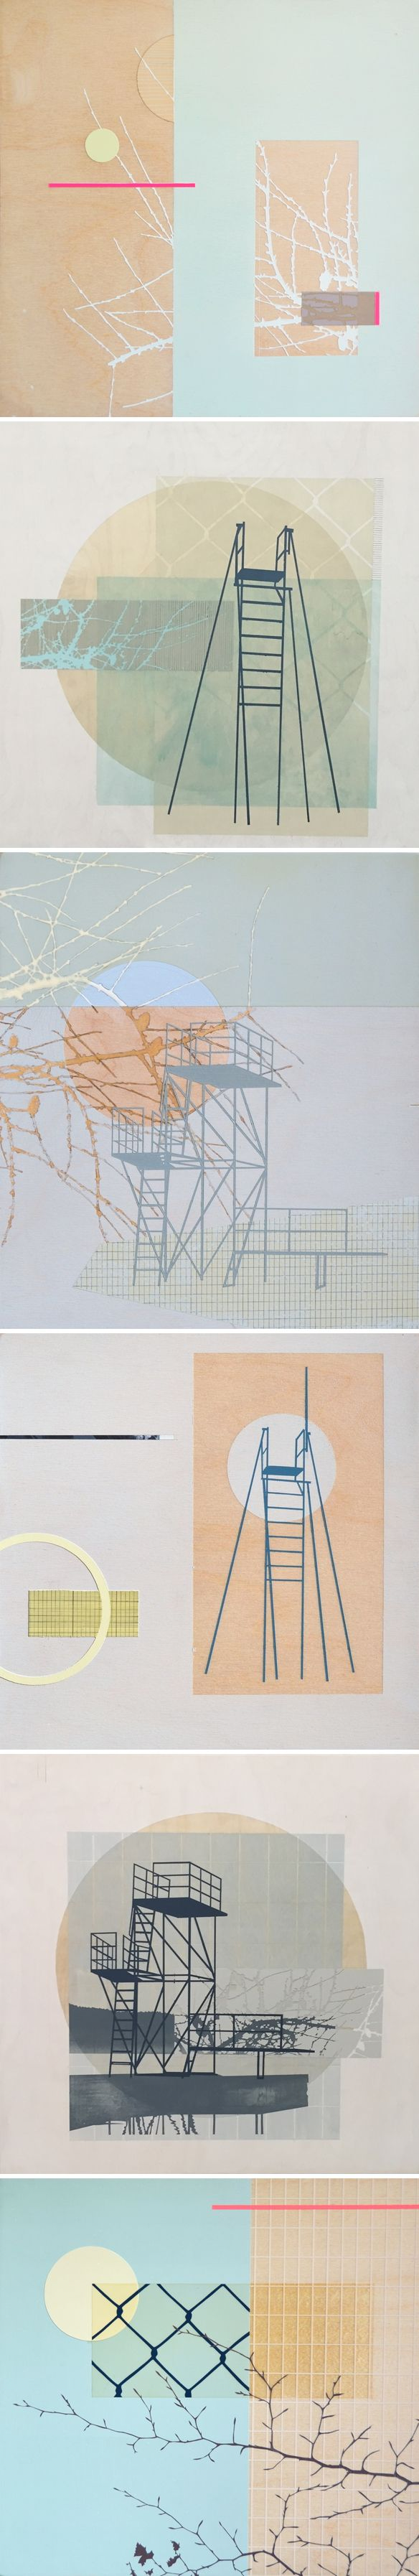 Oh. My. This is the work of Scottish artist Emily Moore. Elegant compositions, stunning color choices, and delicate lines. Those branches… sigh. This is some of her work from 2014/2015 but some of her latest pieces can be seen at the Edinburgh Collage Collective Exhibition, which opens this Wednesday night, November 23rd 7~11pm. If you're in Edinburgh… GO!